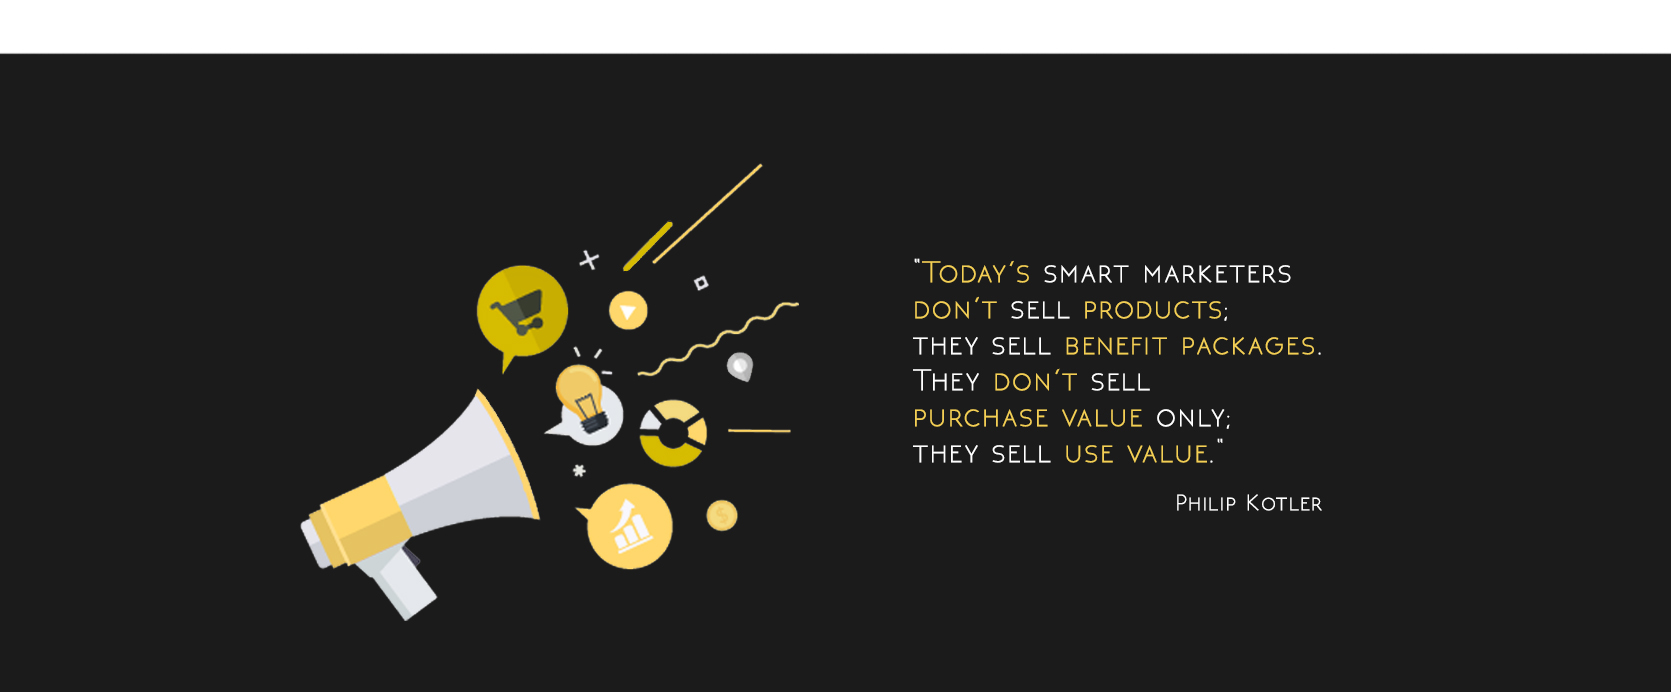 Today's smart marketers don't sell products; they sell benefit packages. They don't sell purchase value only; they sell use value.